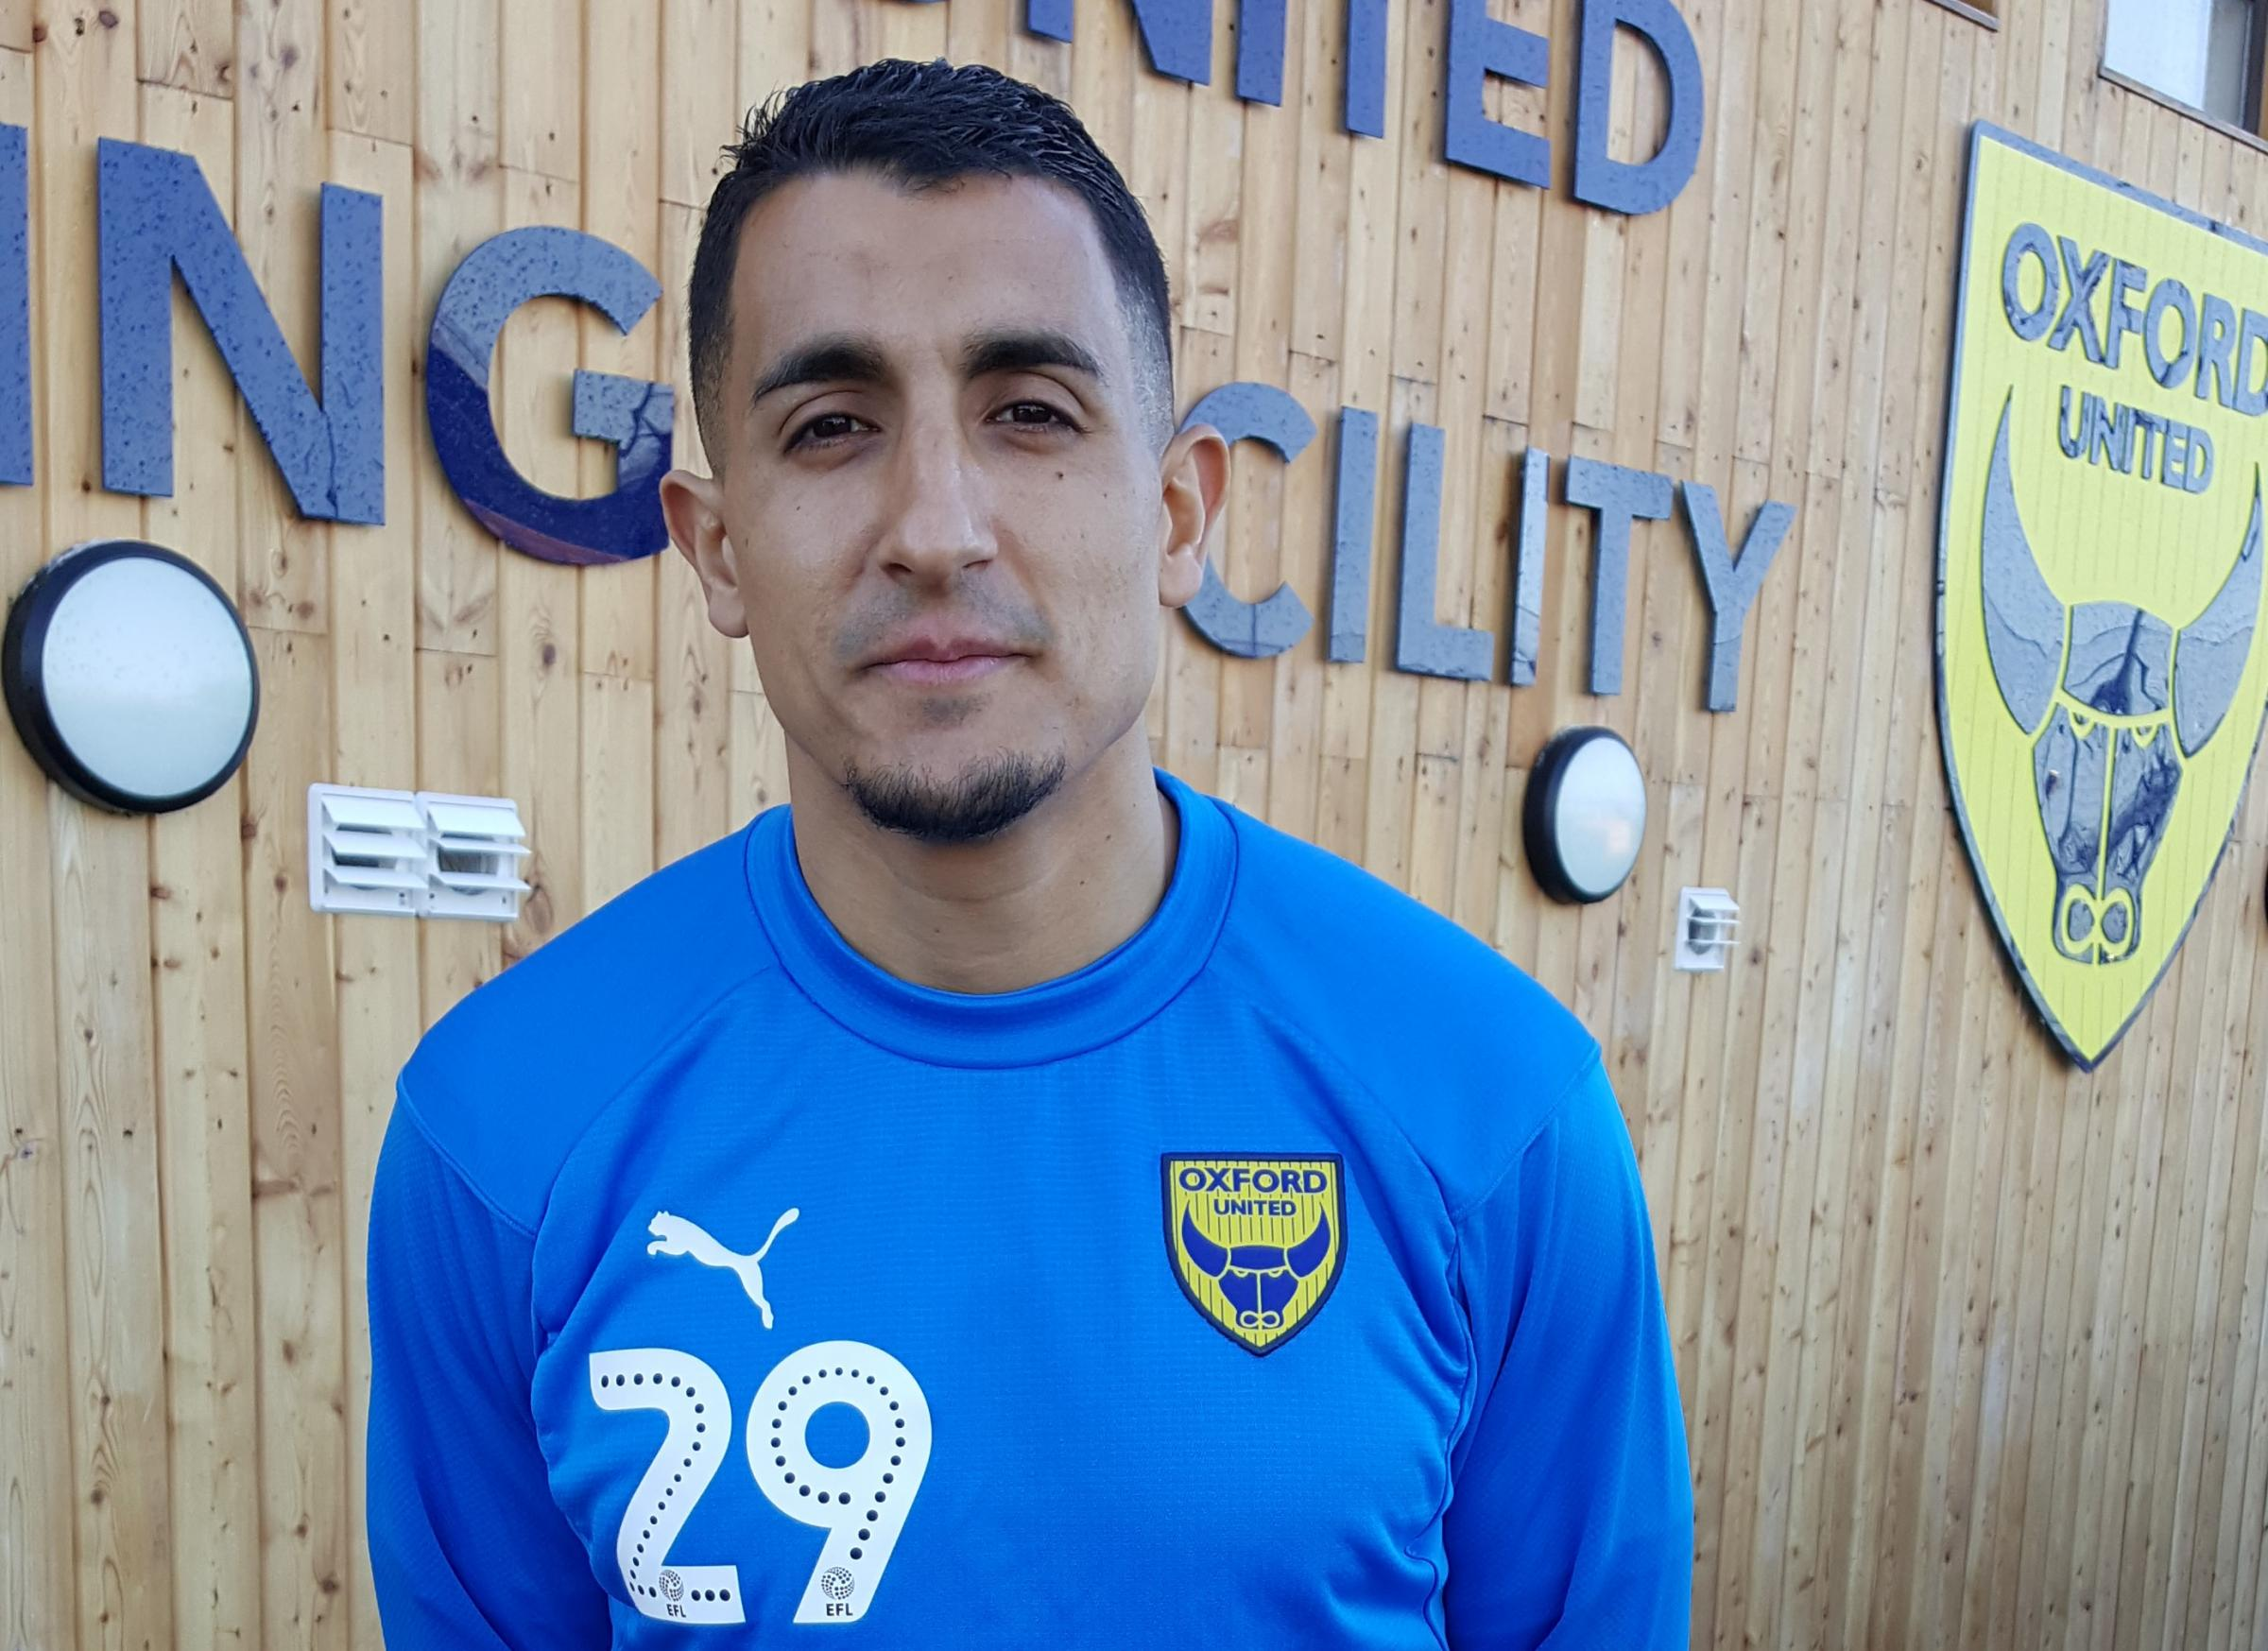 Ahmed Kashi at Oxford United's training ground this morning